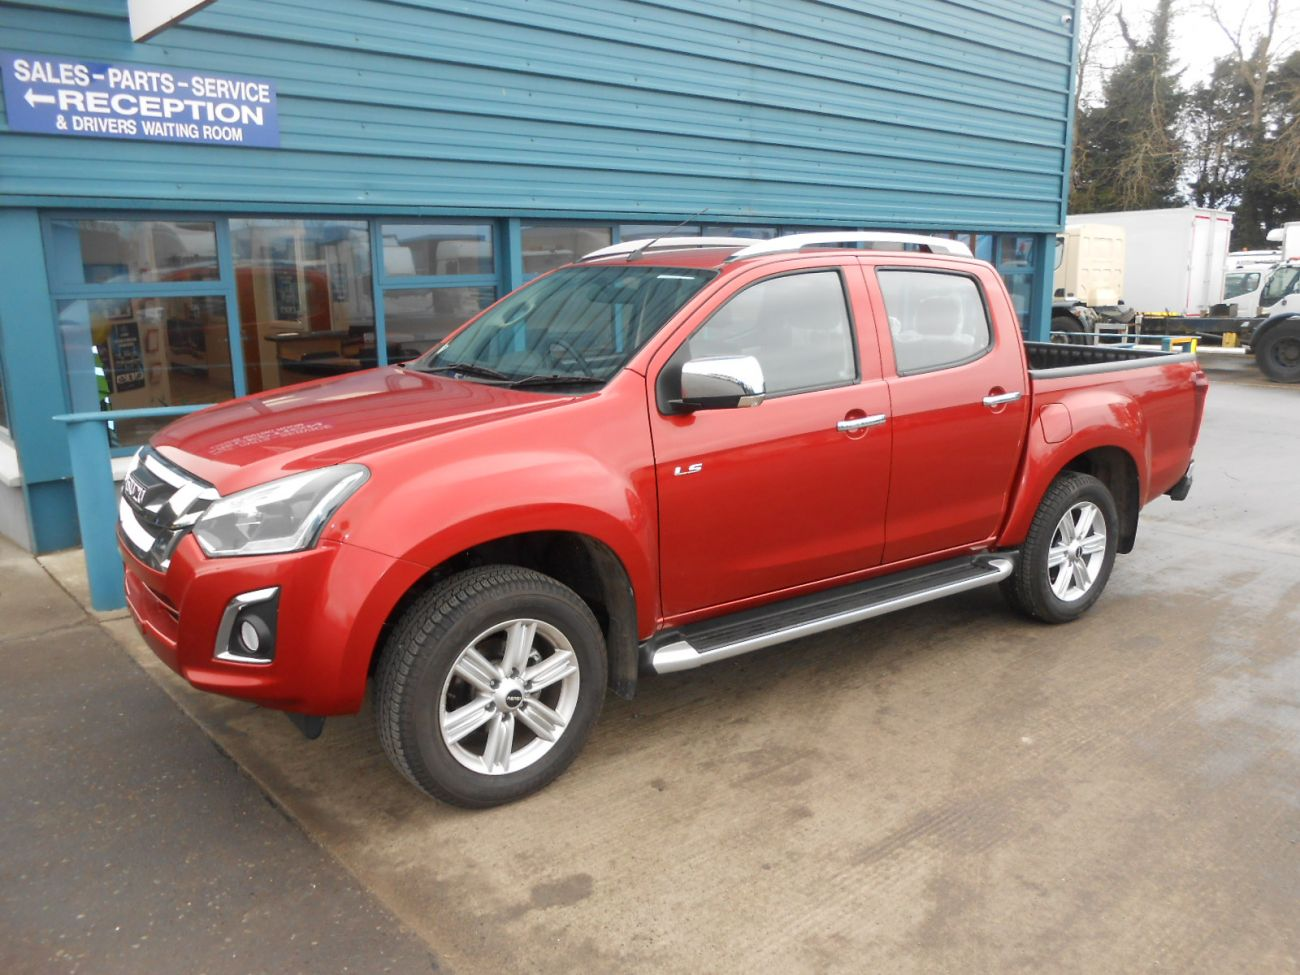 North Dublin Commercials are ISUZU main dealer and parts